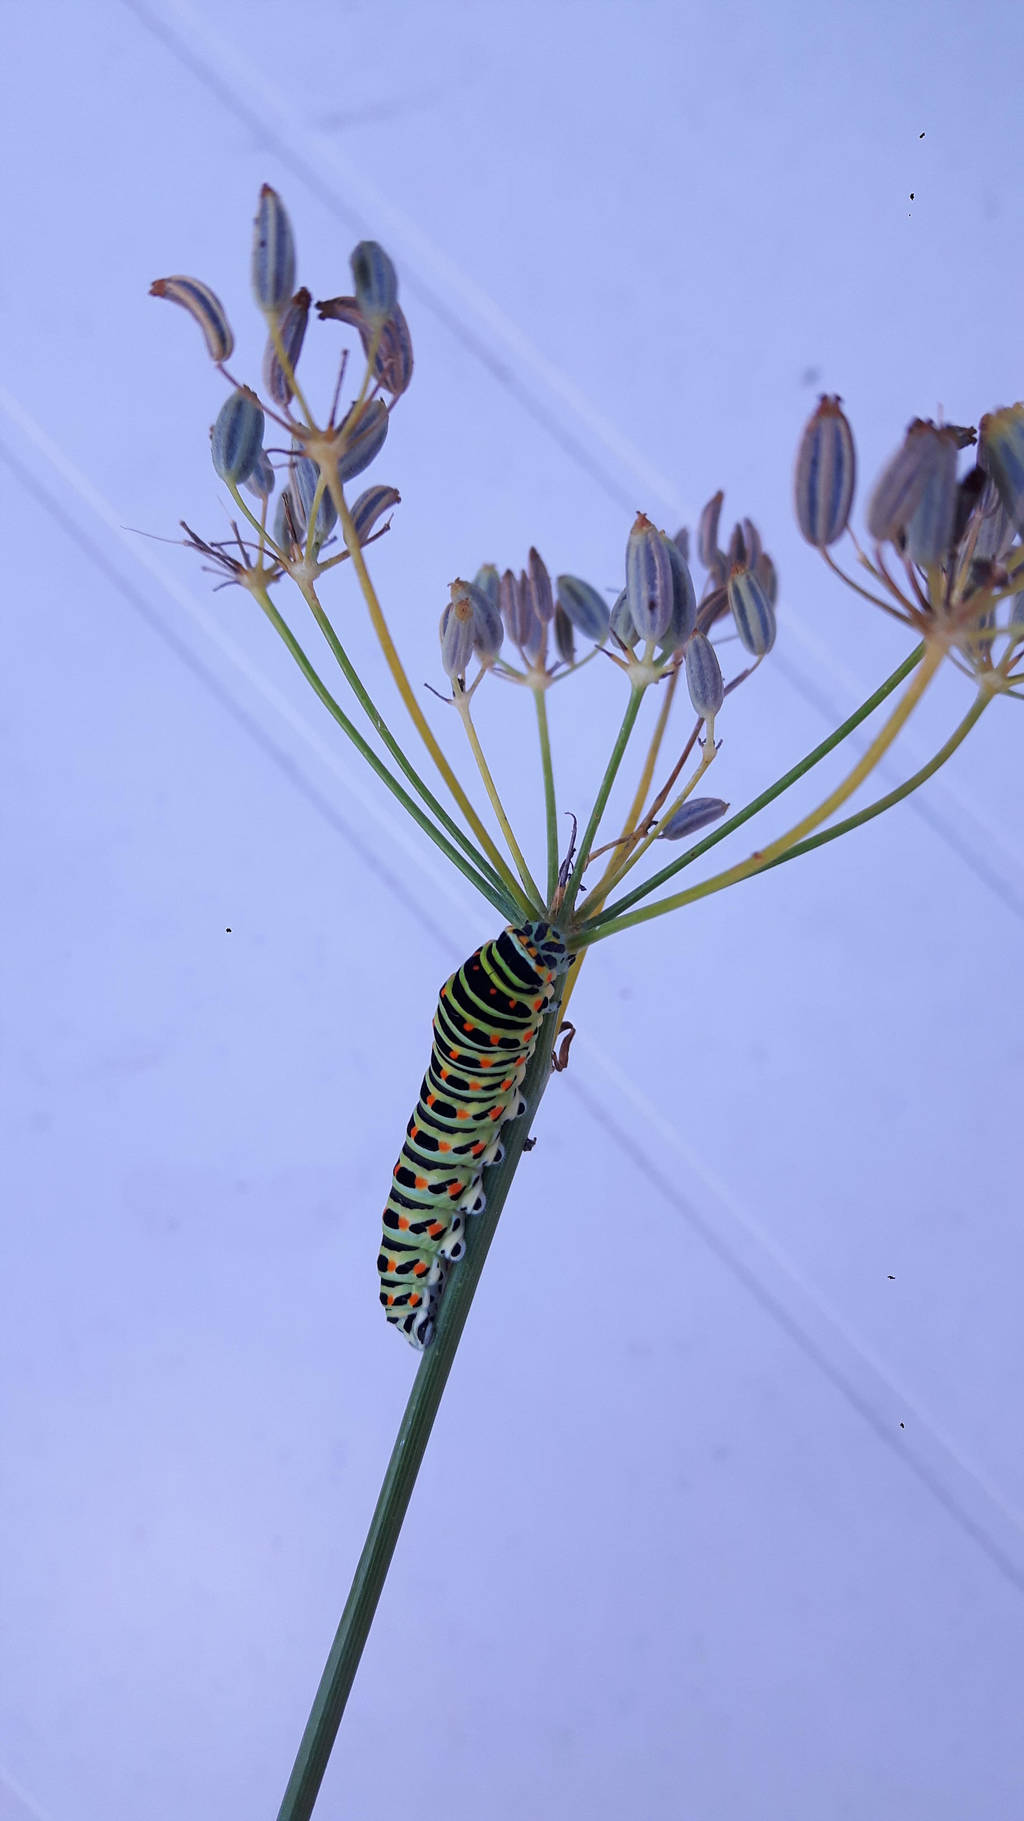 Larval on fennel by bormolino